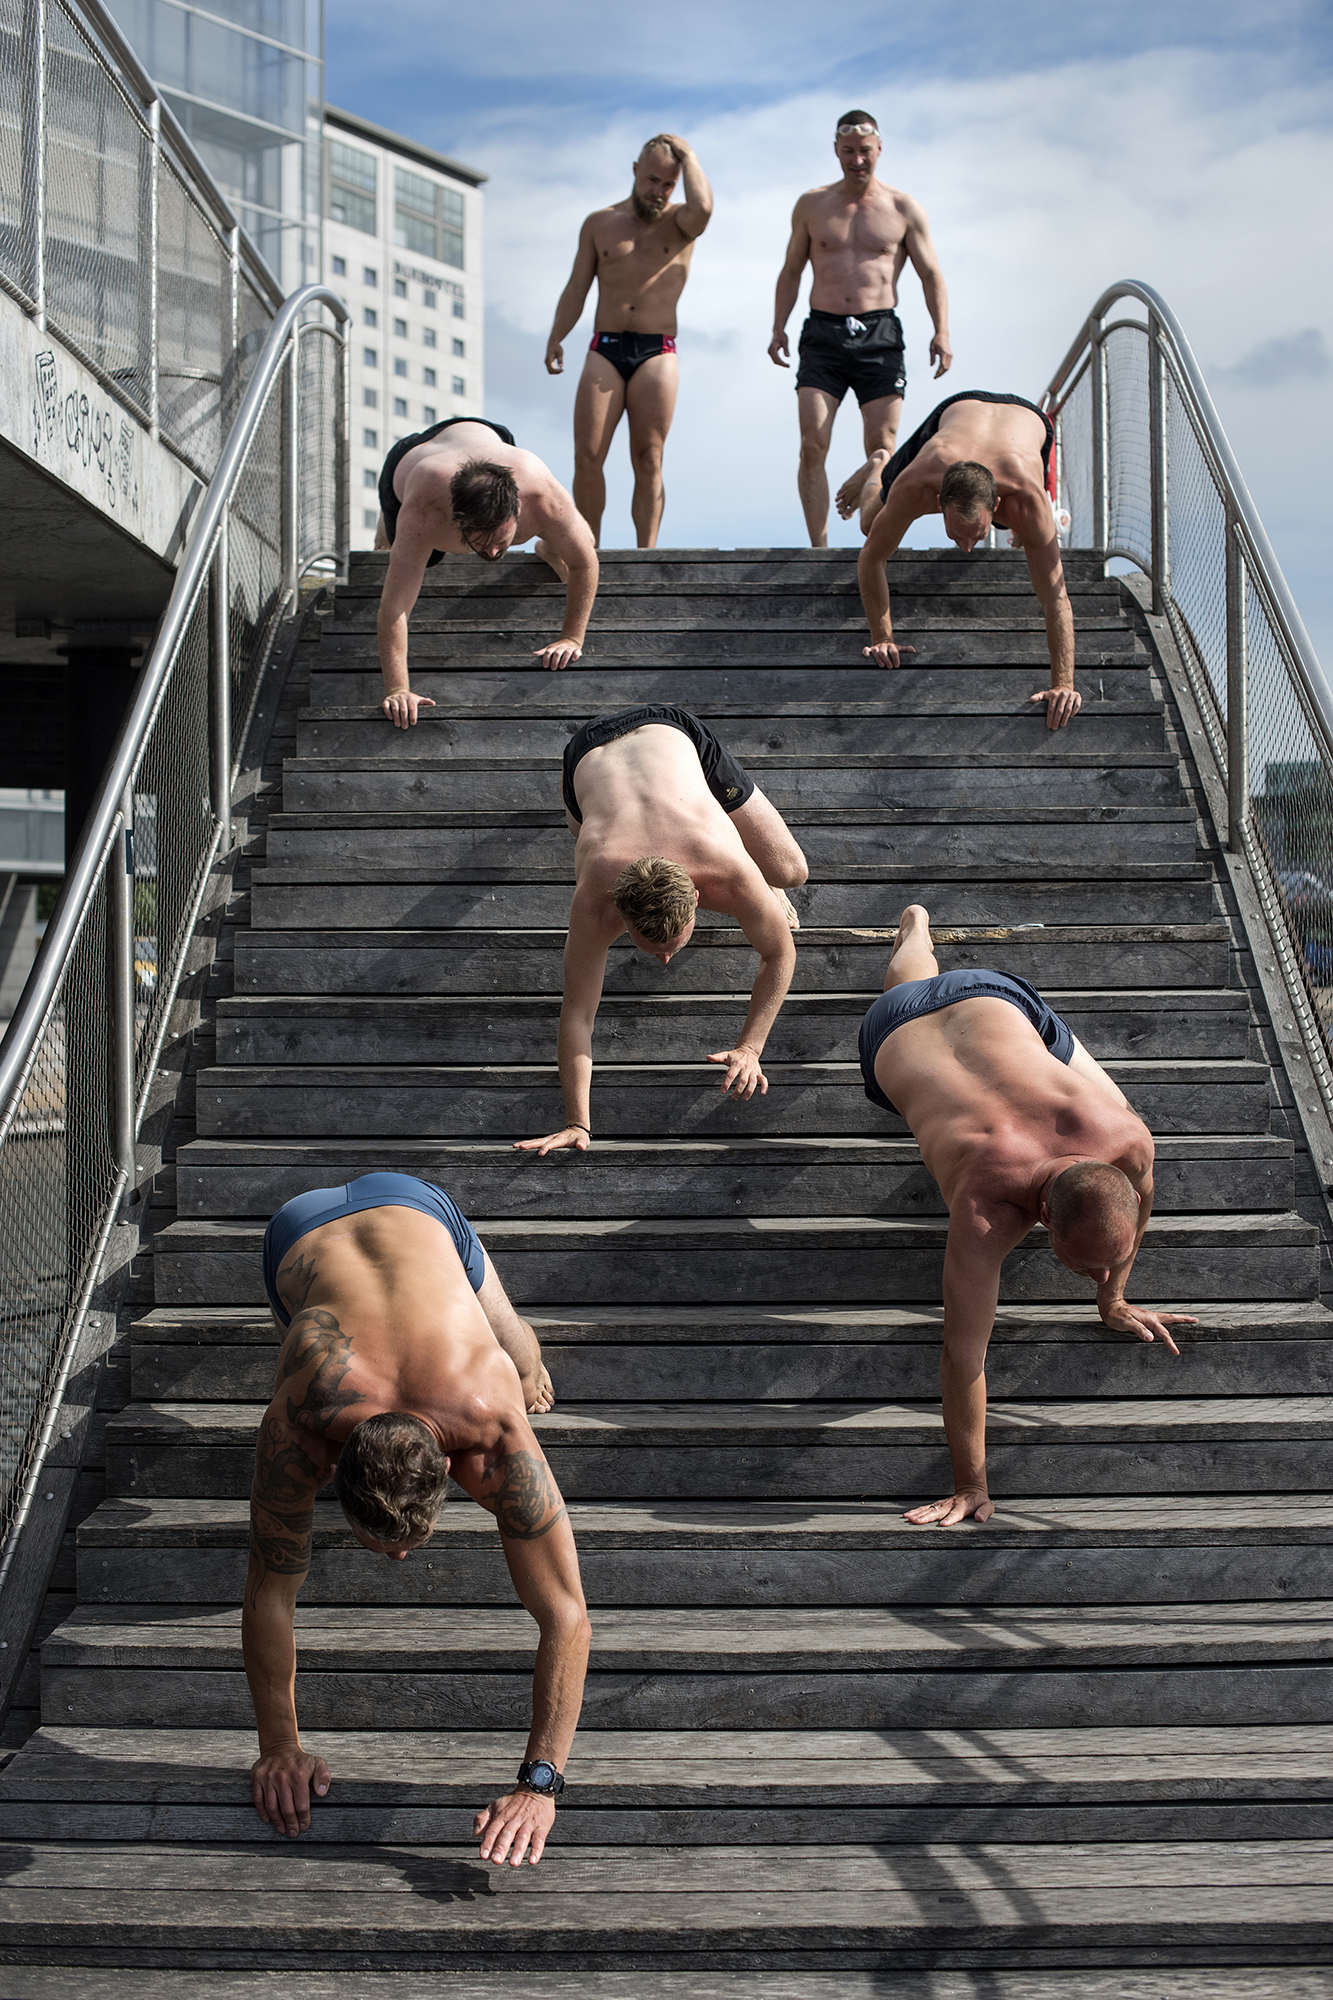 Paleo chef Tomas Rode and his men working out at Kalvebod Quay in Copenhagen.